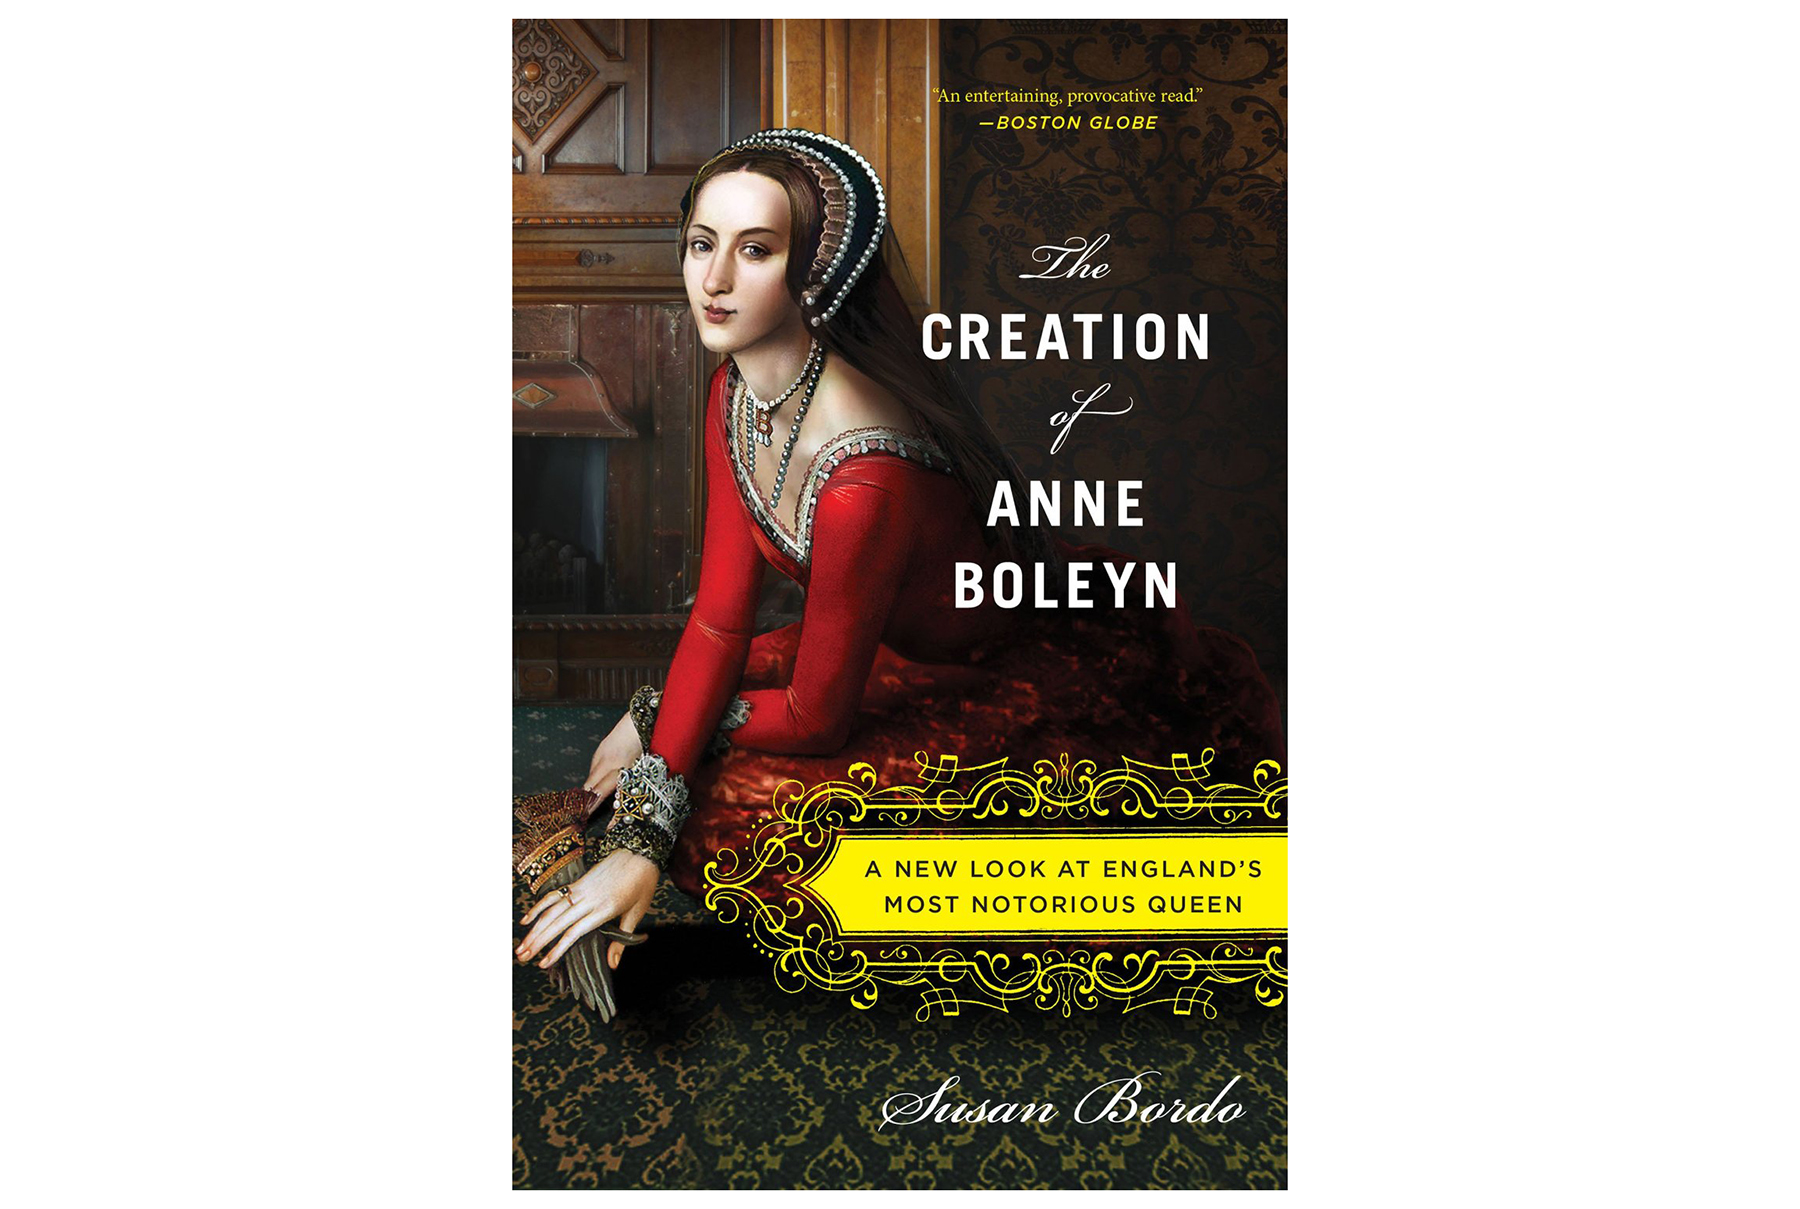 The Creation of Anne Boleyn: A New Look at England's Most Notorious Queen, by Susan Bordo